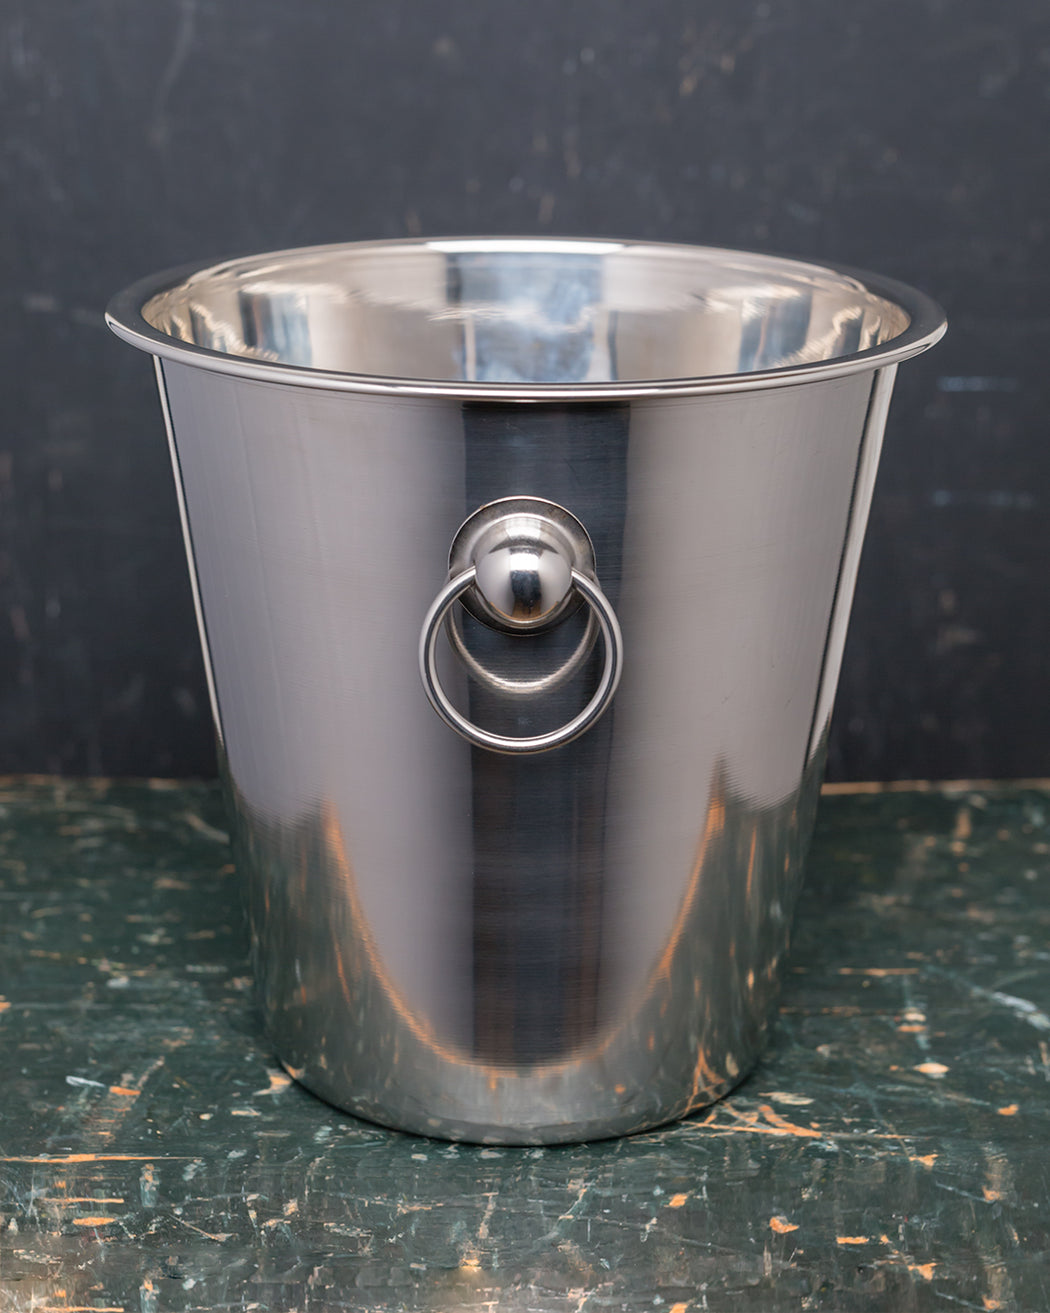 Stainless Steel Ice Bucket - Fishs Eddy